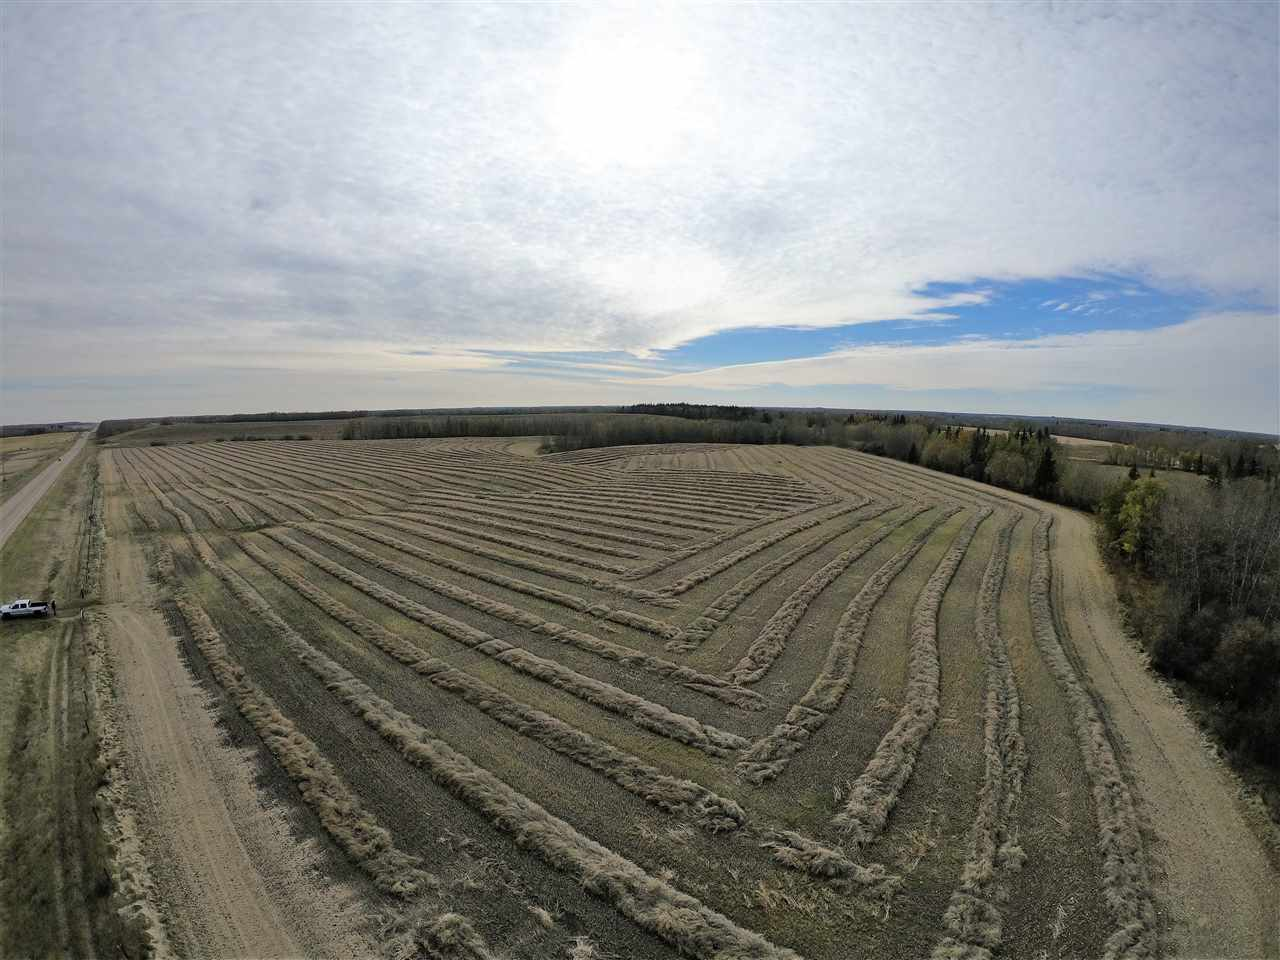 71.35 Acres! Located on Hwy 44 near Jarvie! Great for agriculture or to build your dream home and hobby farm. Gently rolling hills give lots of nice building spots. Good producing land. Property had a fantastic canola crop this year.